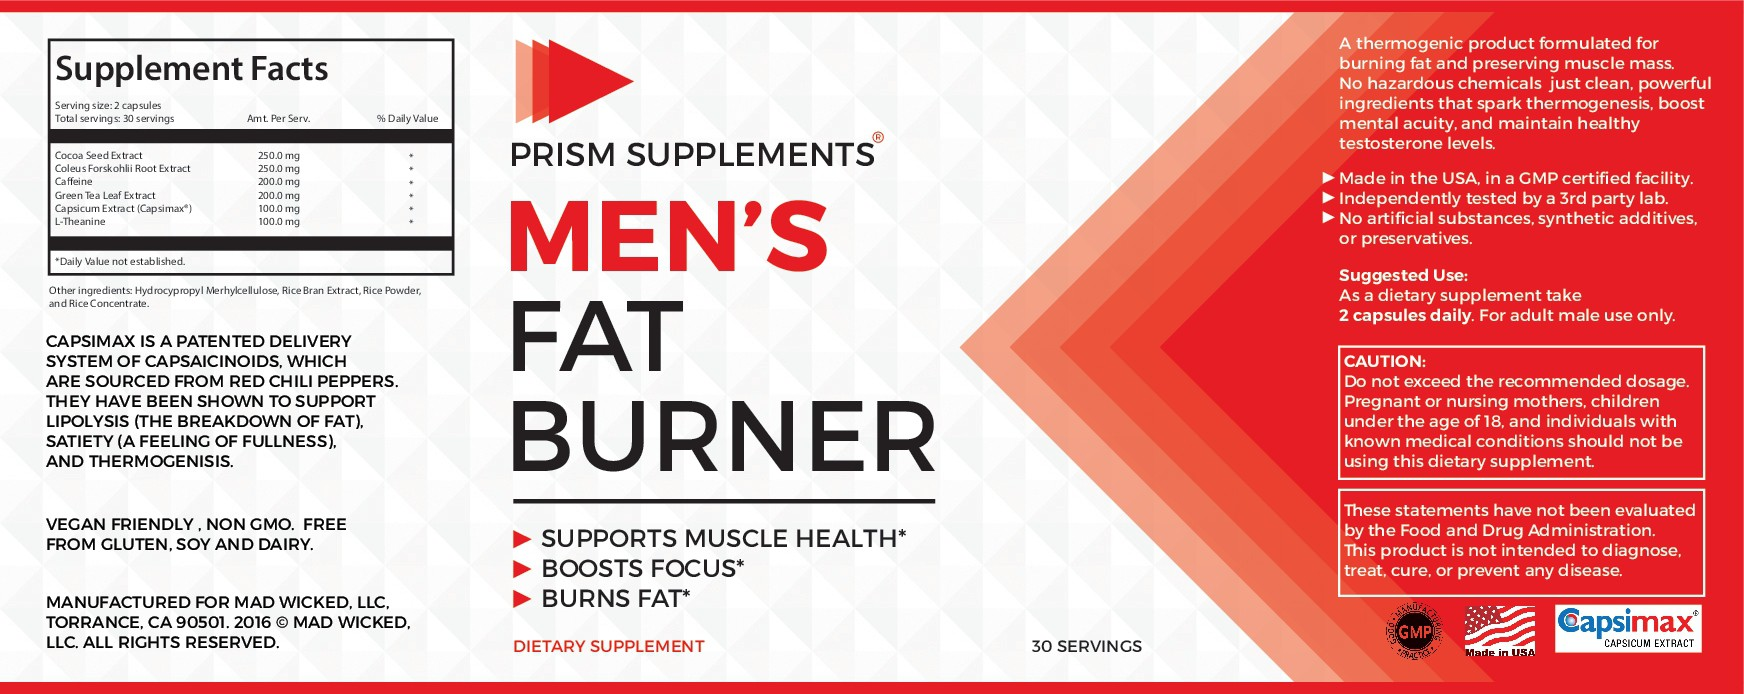 Thermogenic/Weight Management Product Label contest